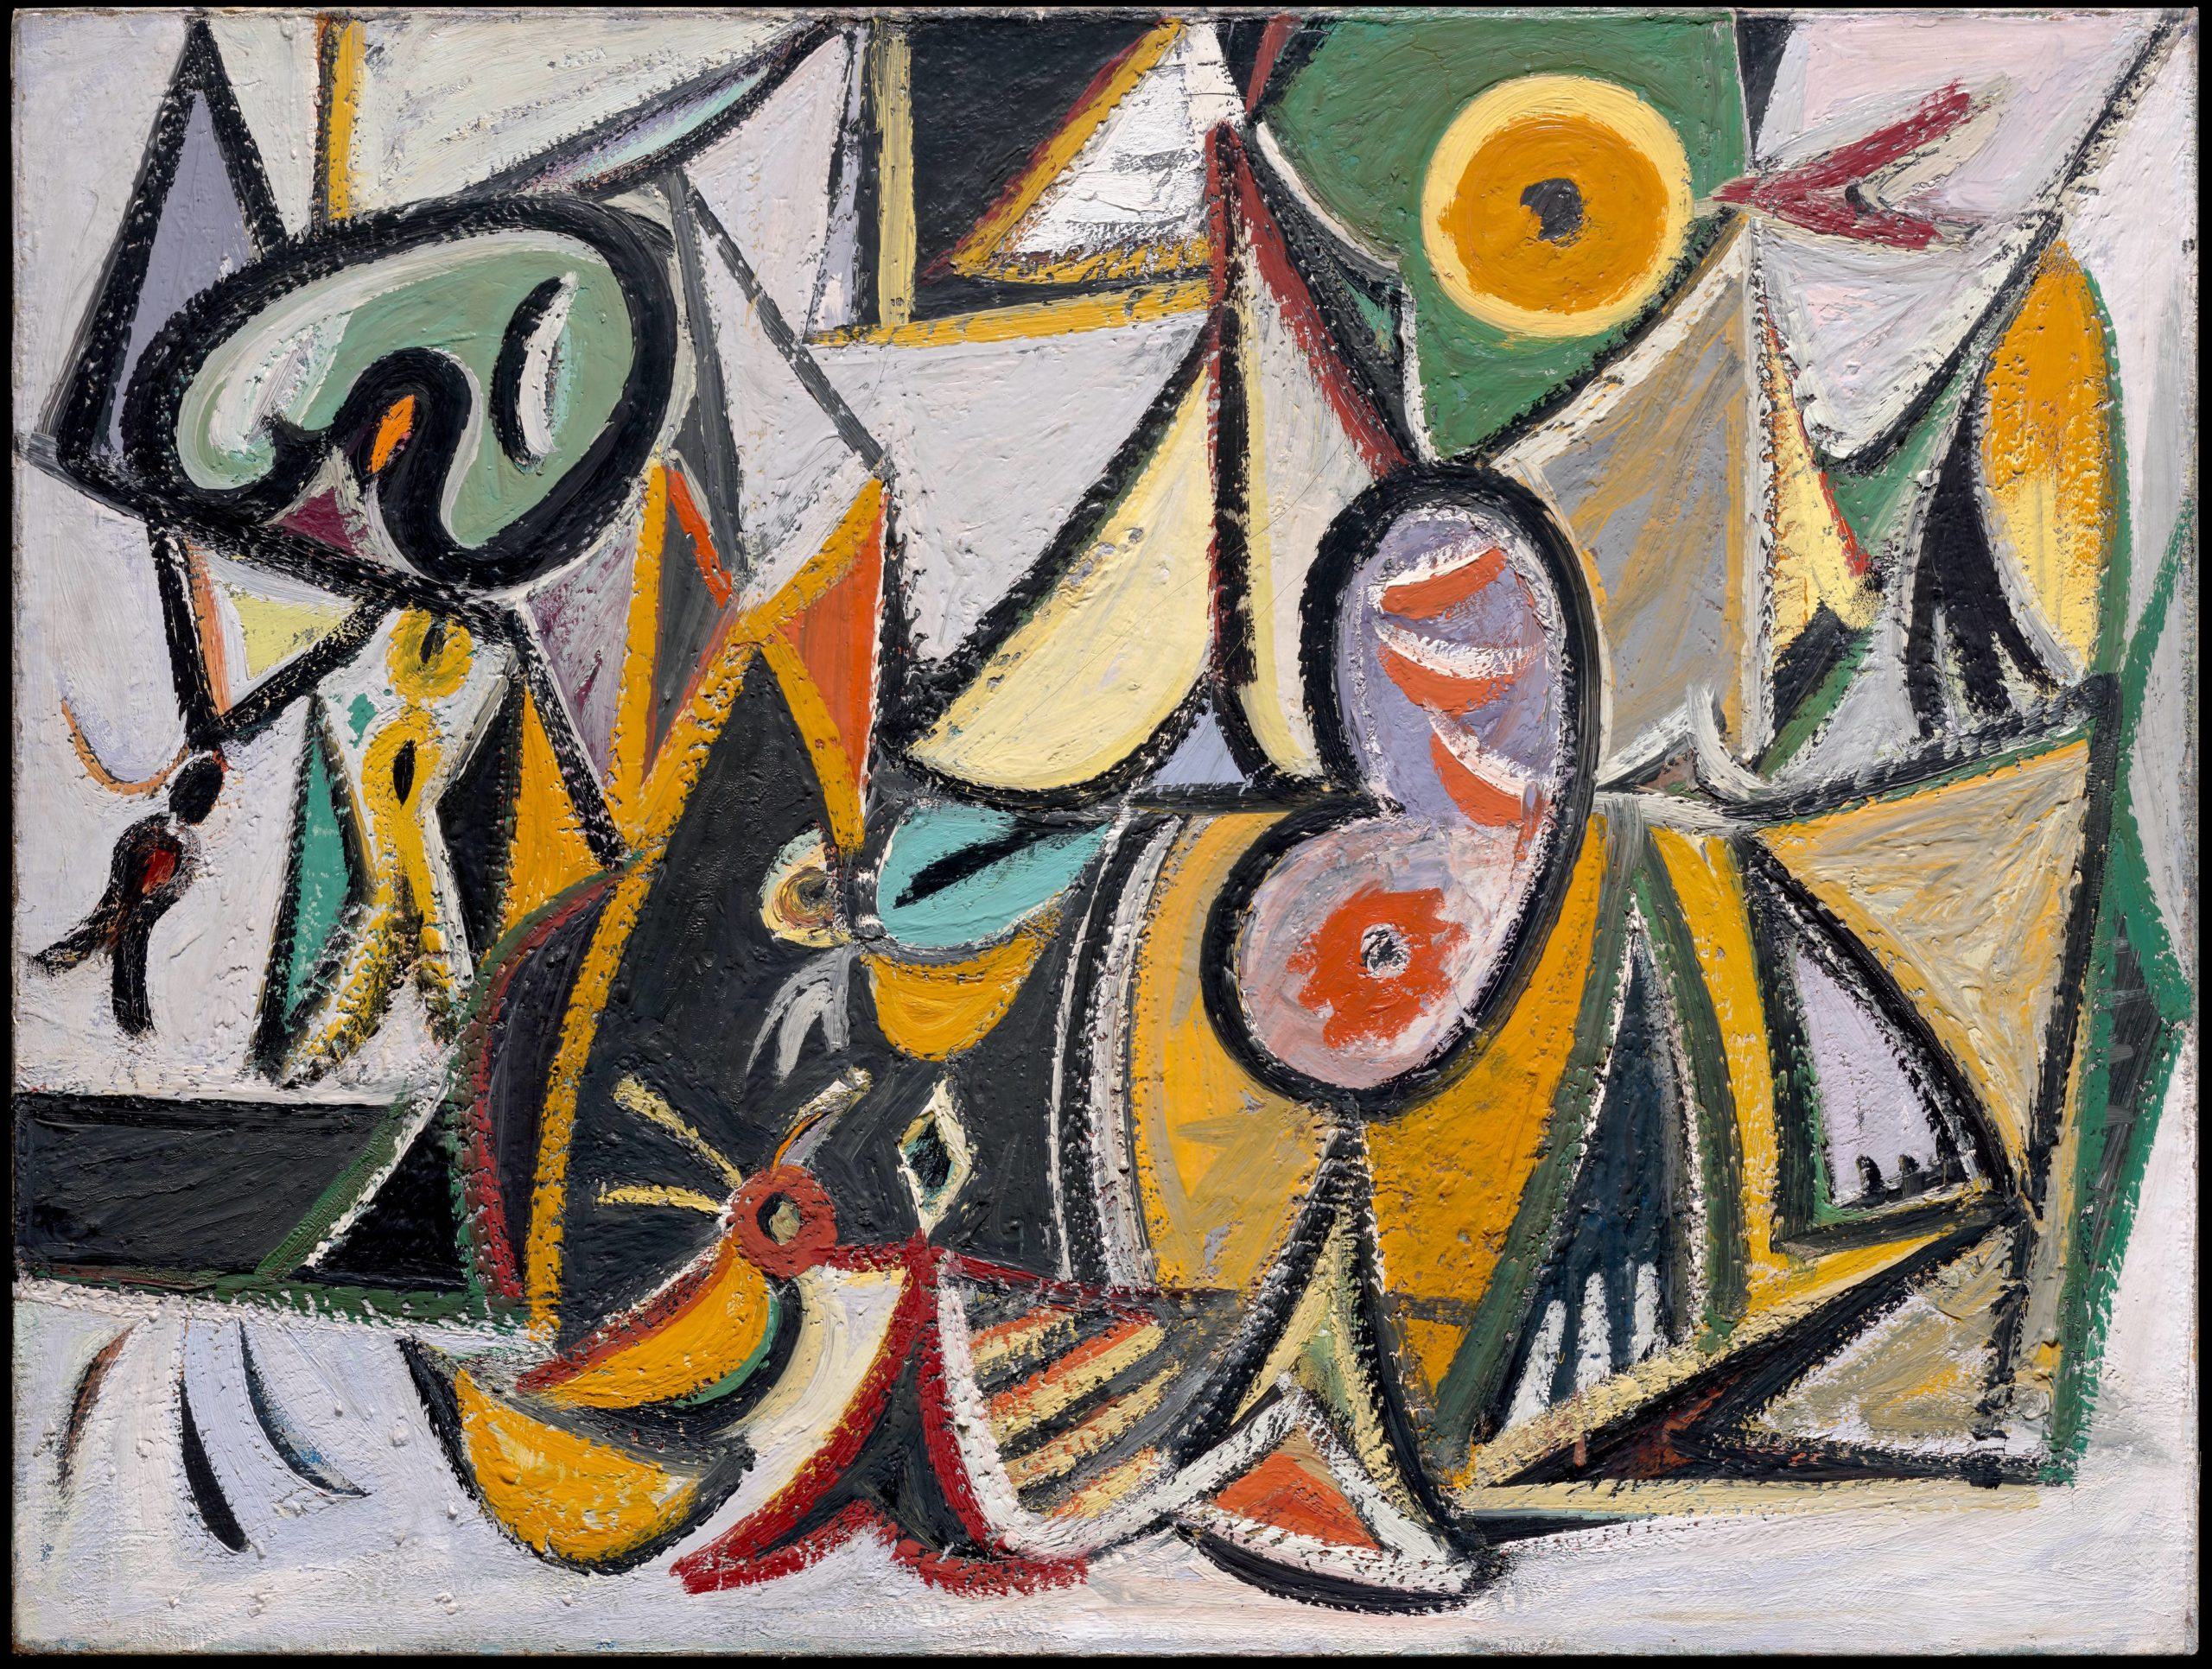 This three-foot-tall, four-foot-wide, abstract oil painting features thick black outlines and cloisonné color, like a stained glass window. The canvas has been broken down into dozens of separate, overlapping shapes, some of which are vaguely representational. A face resembling an artist's palette can be discerned near our upper left, and a large capsule-shaped object with triangular eyes and an open mouth occupies the bottom half of the canvas. Both above and below this creature are triangular shapes which might represent teepee-style conical tents. The forms are filled with intense greens, yellows, and golds, as well as large amounts of white pigment, which gives the canvas a bright, luminous quality. The paint is uniformly thick, and the artist's brush marks are evident, giving the canvas a waxy texture.